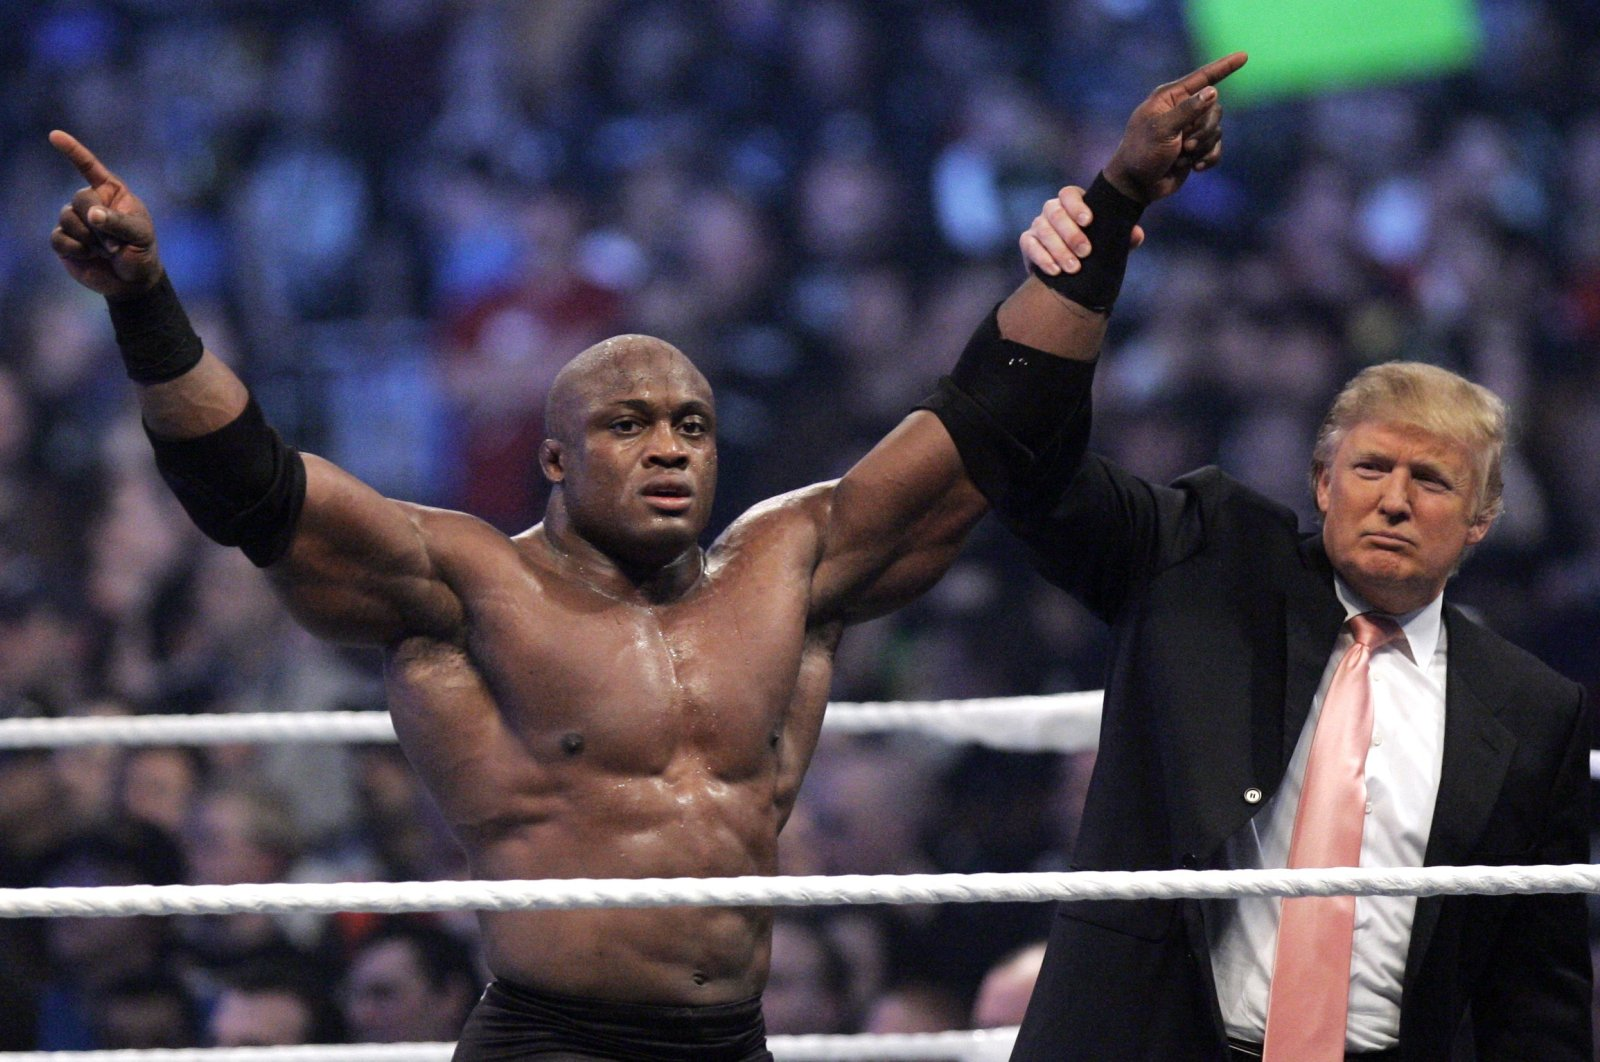 Donald Trump raises the arm of wrestler Bobby Lashley after he defeated Umaga at Wrestlemania 23 at Ford Field, Detroit, April 1, 2007. (AP Photo)